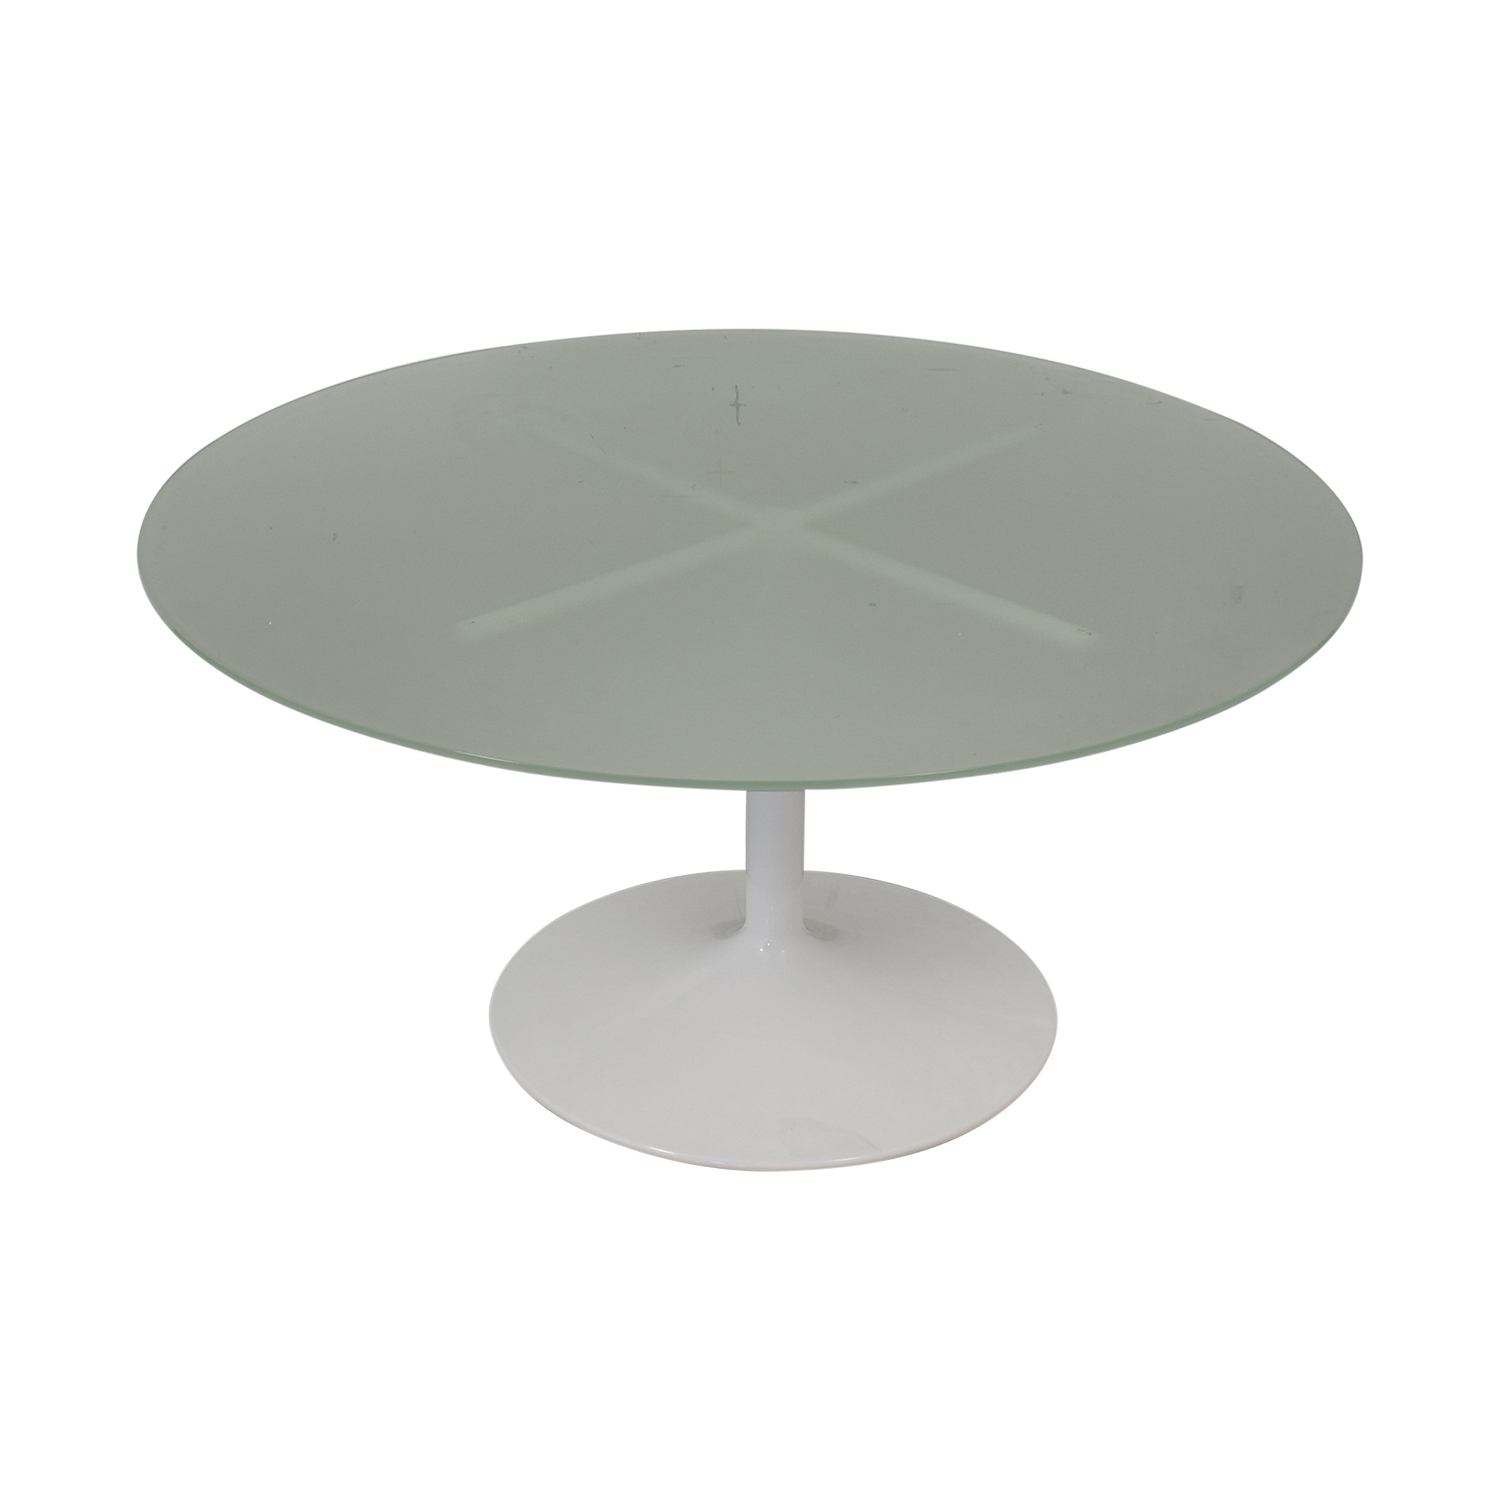 Room & Board Room & Board Aria Round Glass Dining Table dimensions